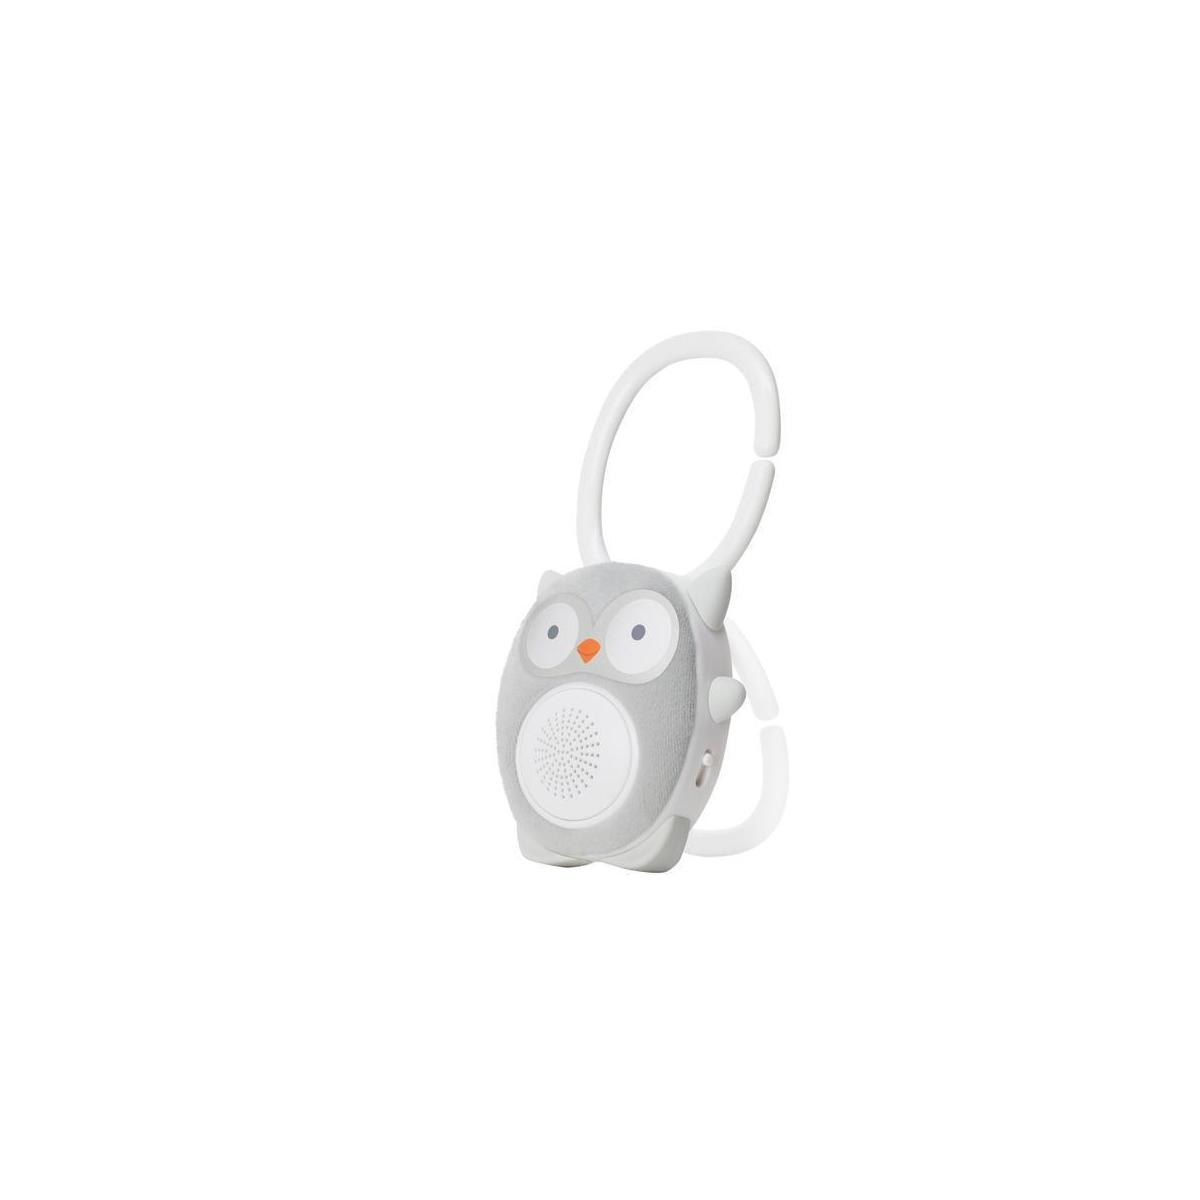 SoundBub White Noise Player and Bluetooth Speaker - Ollie the Owl